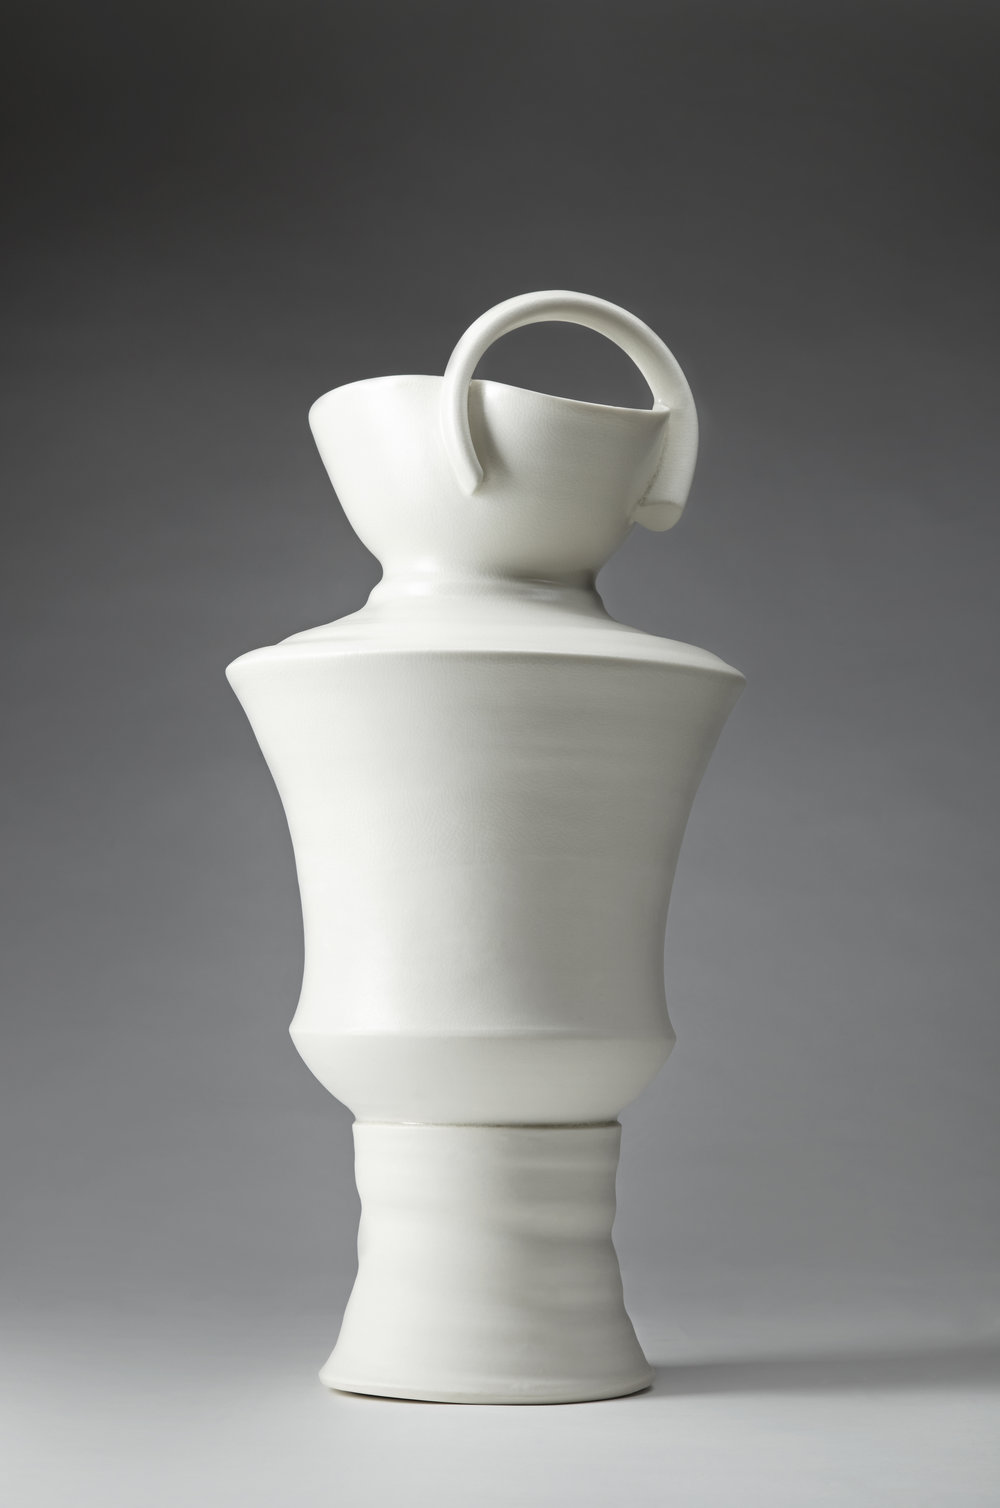 Loop Vessel porcelain